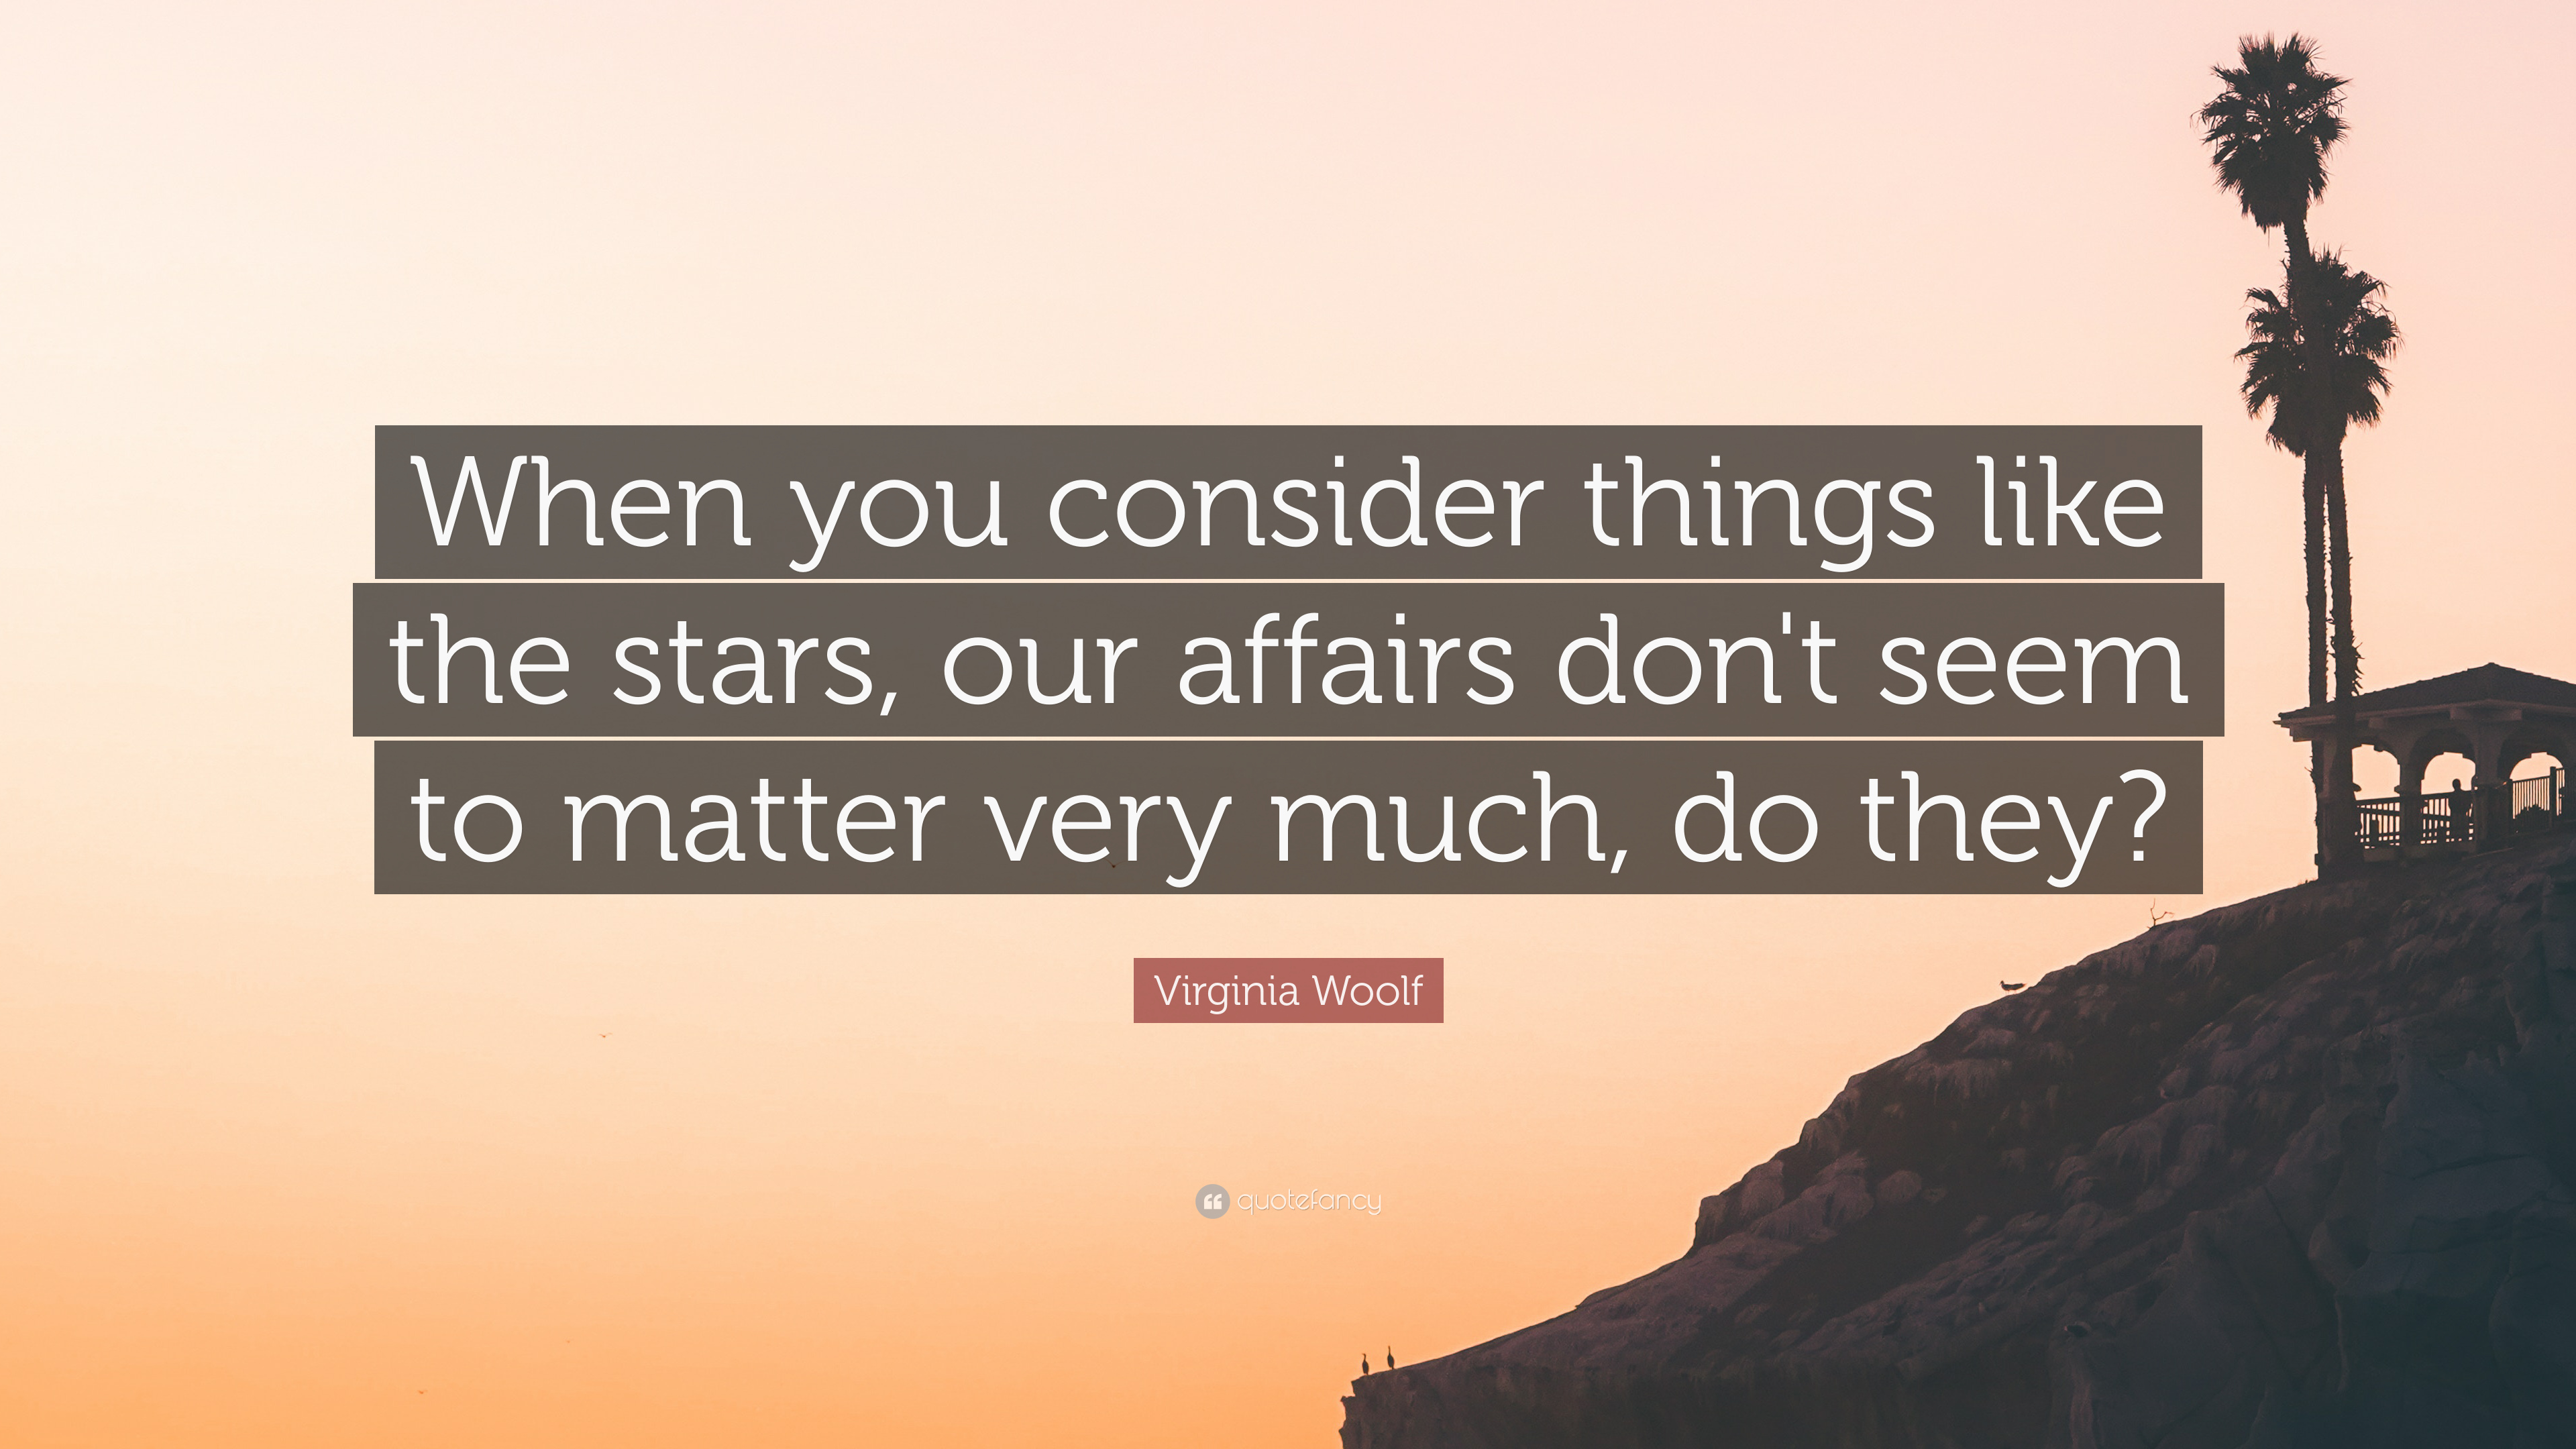 sun quote down goes lie sinatra frank virginia quotes weak vivekananda swami woolf anything makes matter physically don consider stars